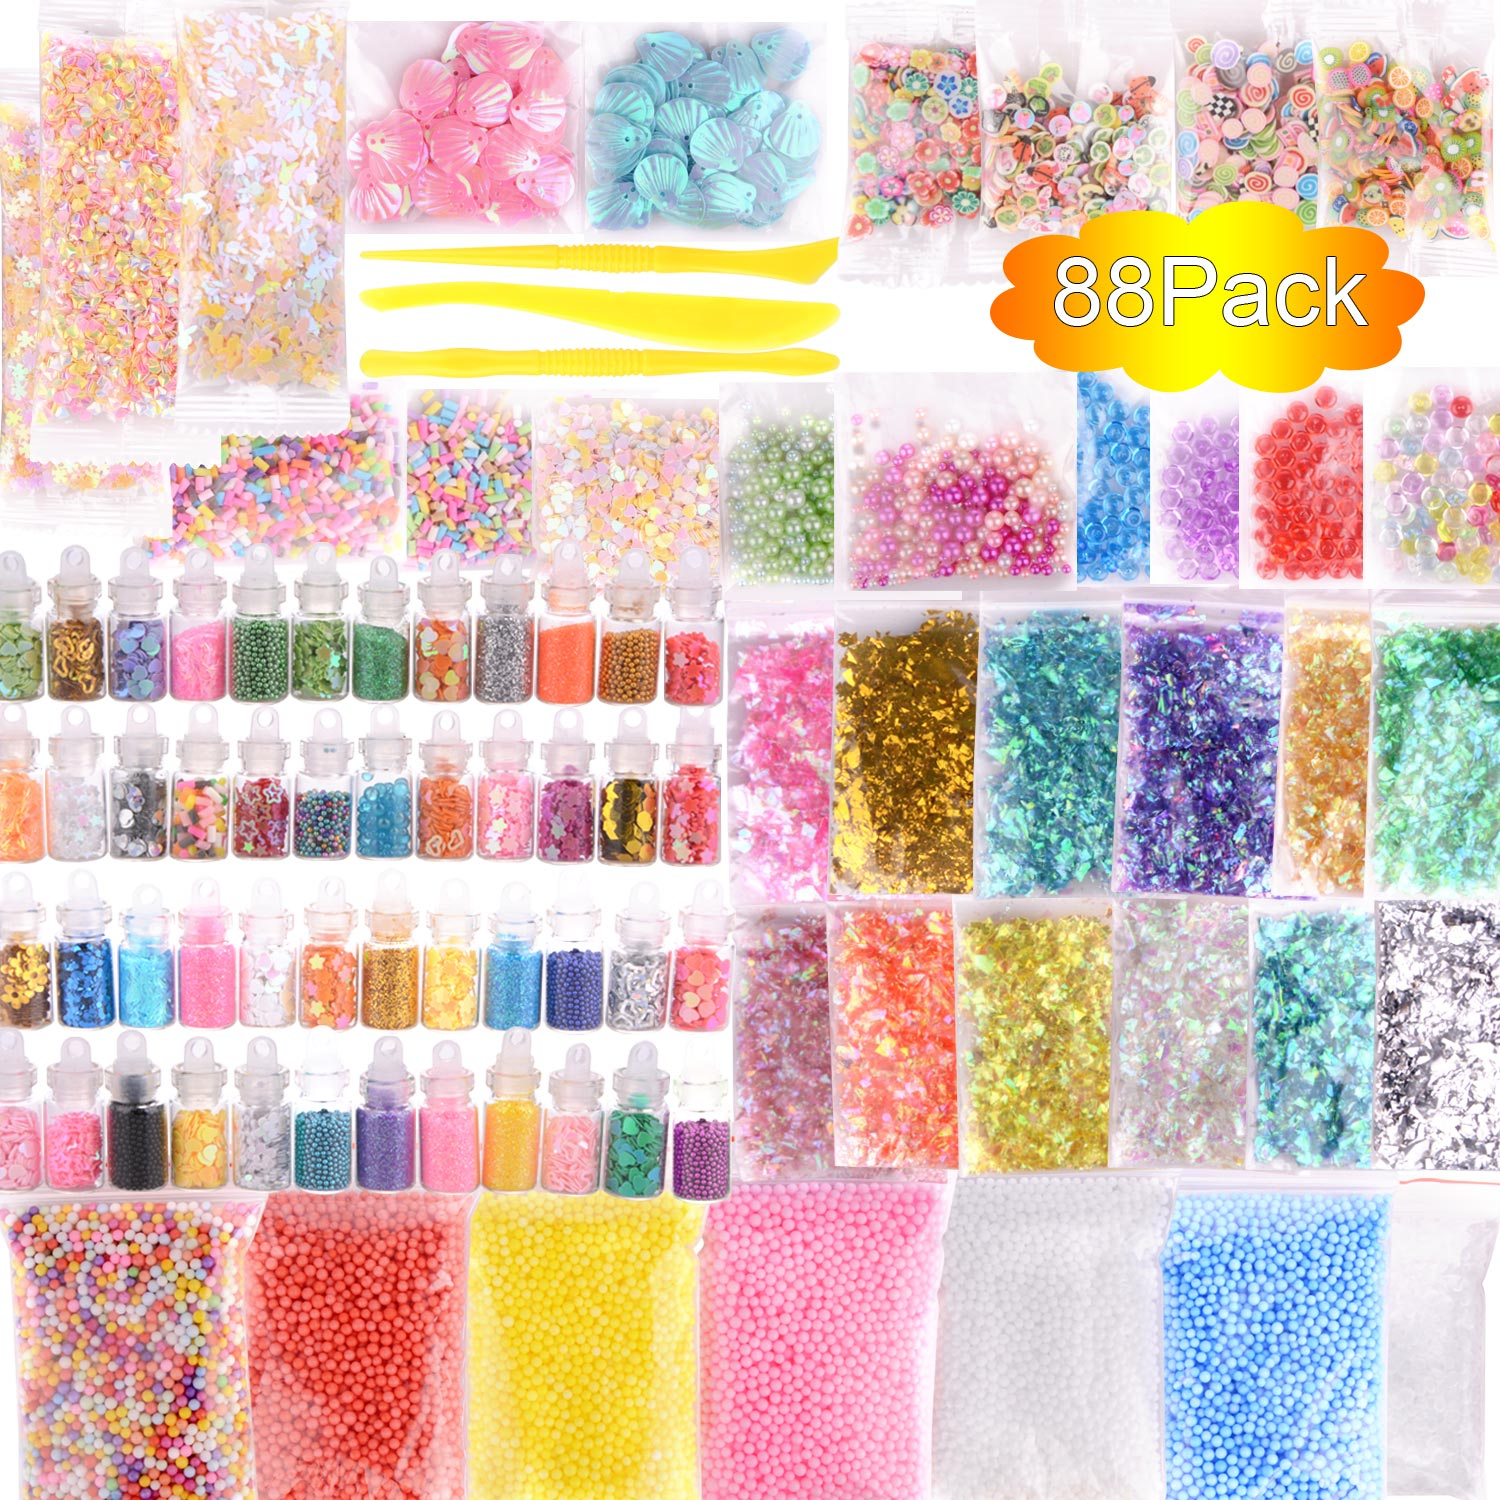 88pack/set Slime Making Kit Styrofoam Foam Balls Beads Charms Glitter Jars Containers Slime for DIY Craft Homemade Party Supply88pack/set Slime Making Kit Styrofoam Foam Balls Beads Charms Glitter Jars Containers Slime for DIY Craft Homemade Party Supply